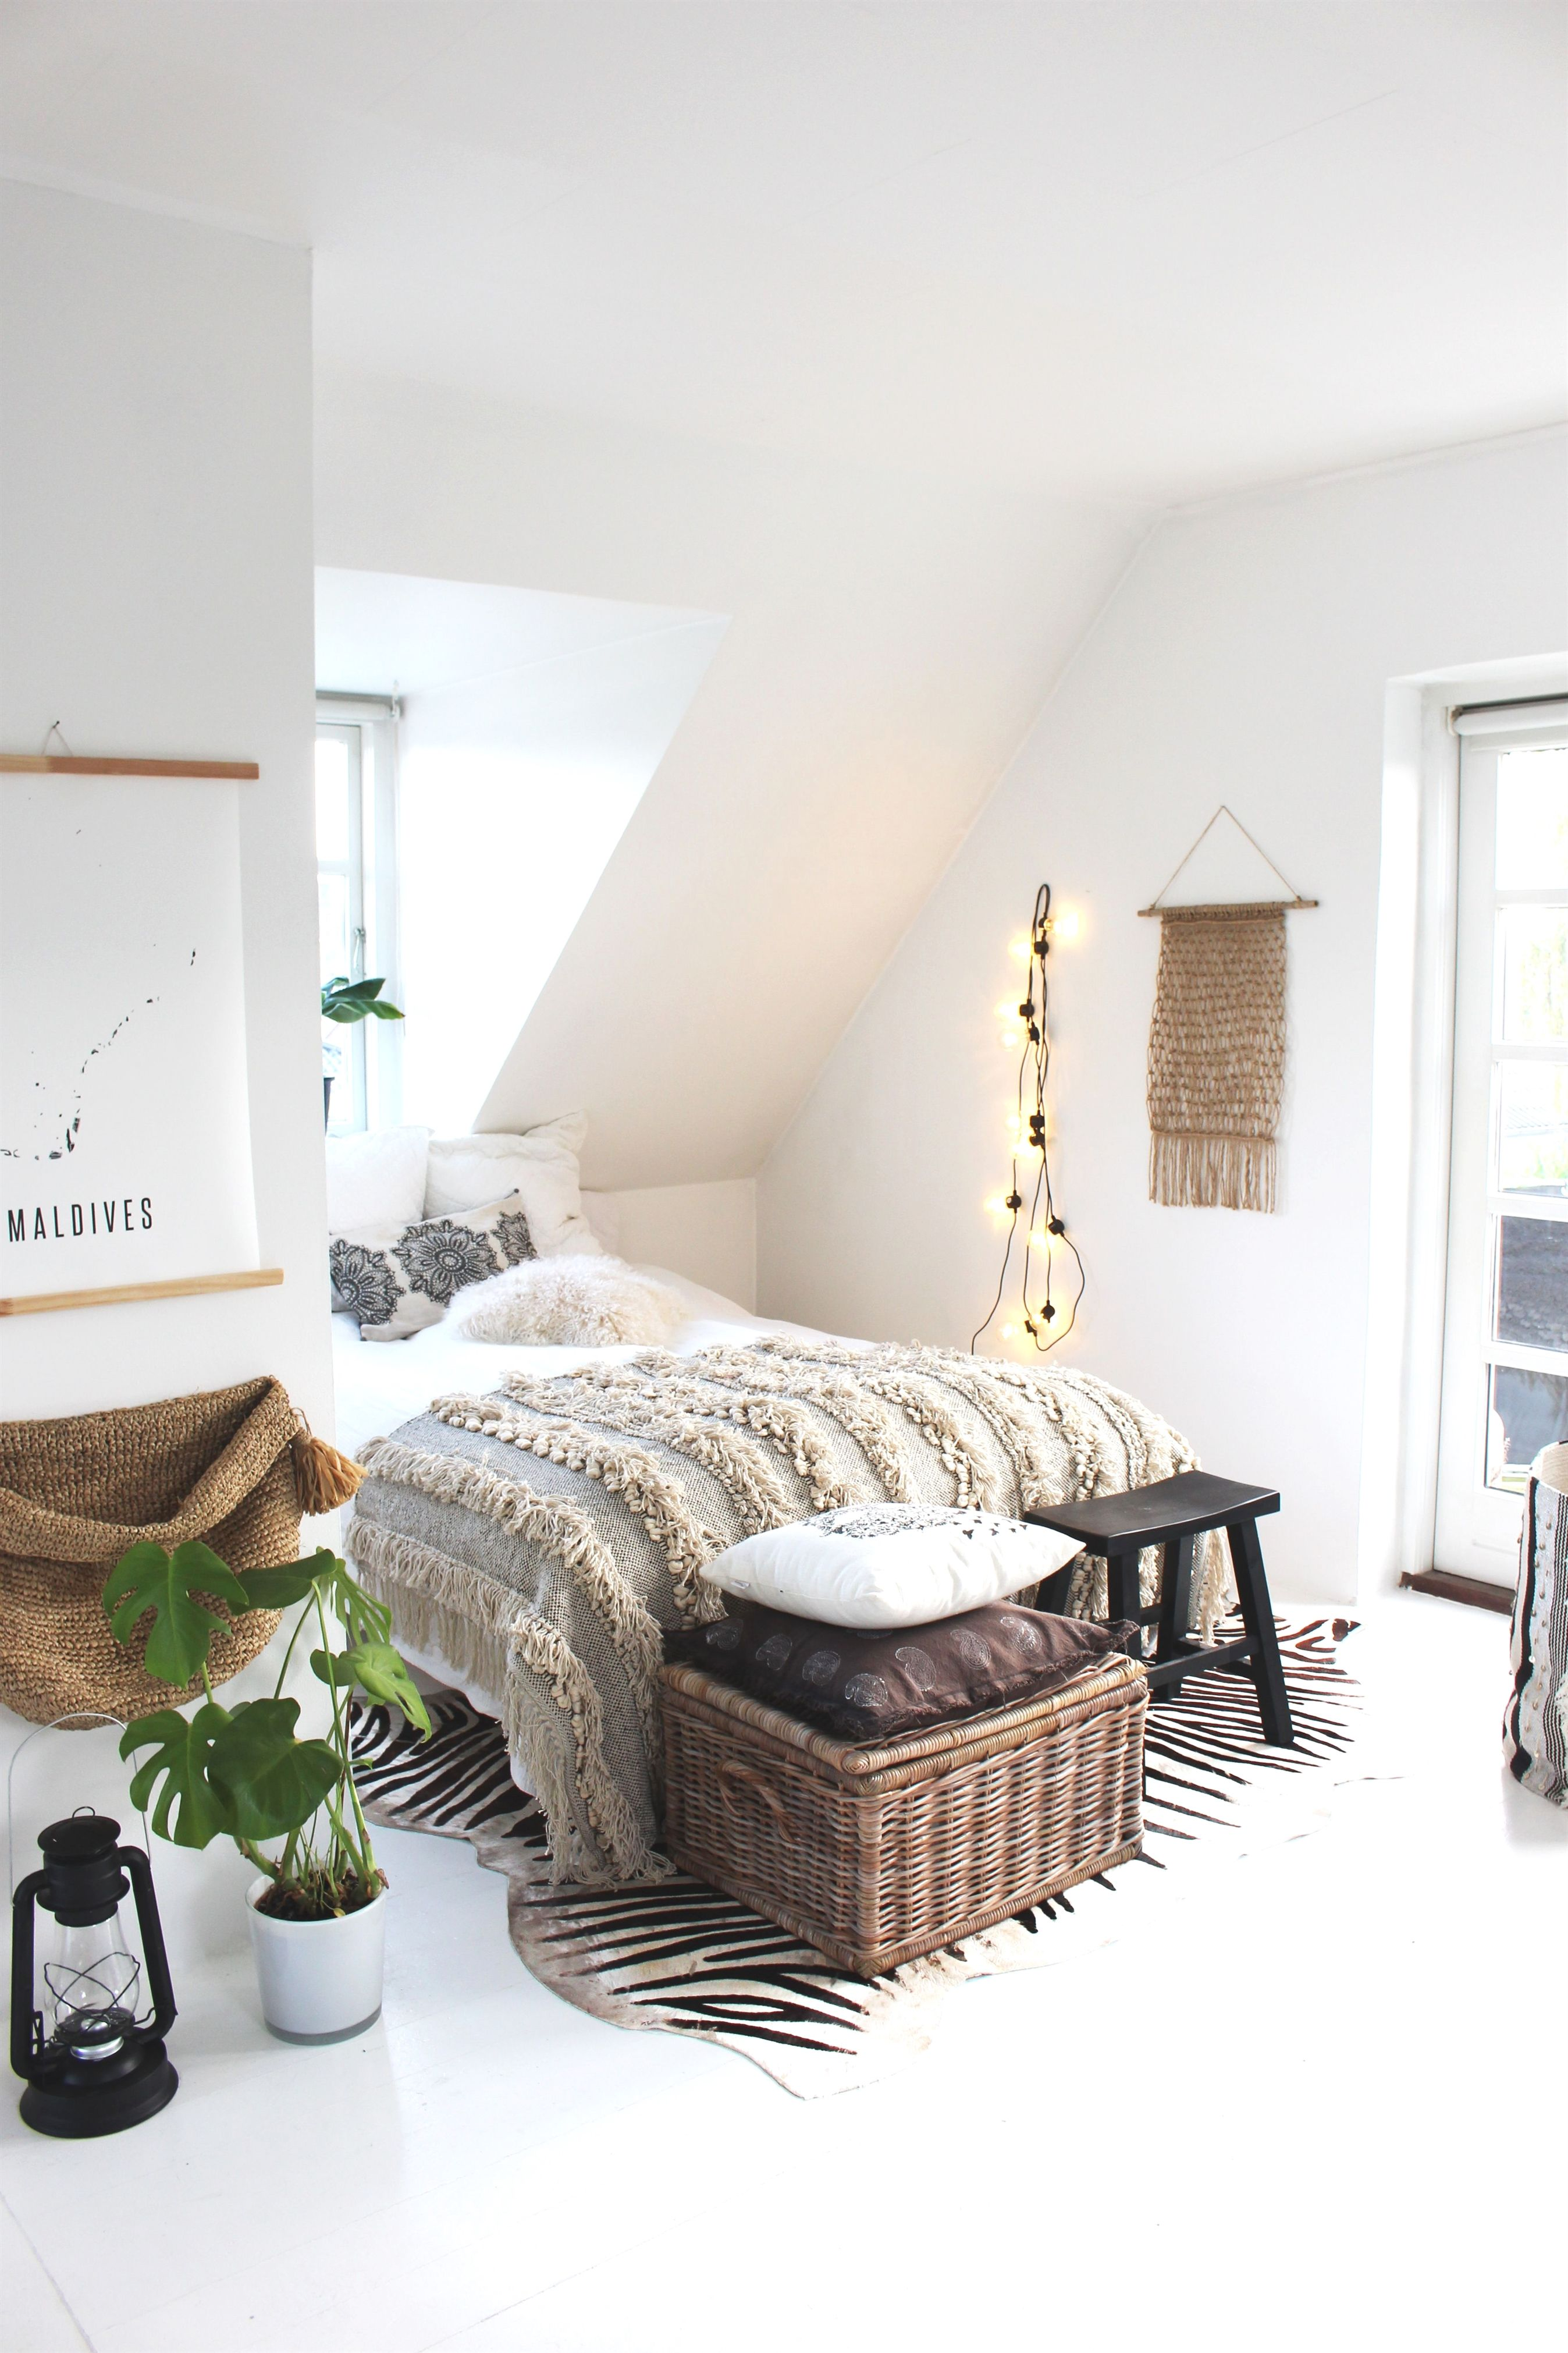 Kirsten Shome Is A Perfect Mix Of Boho And Danish Style Inspired By Her Travels All Around The World Bohemianbedroomdecor